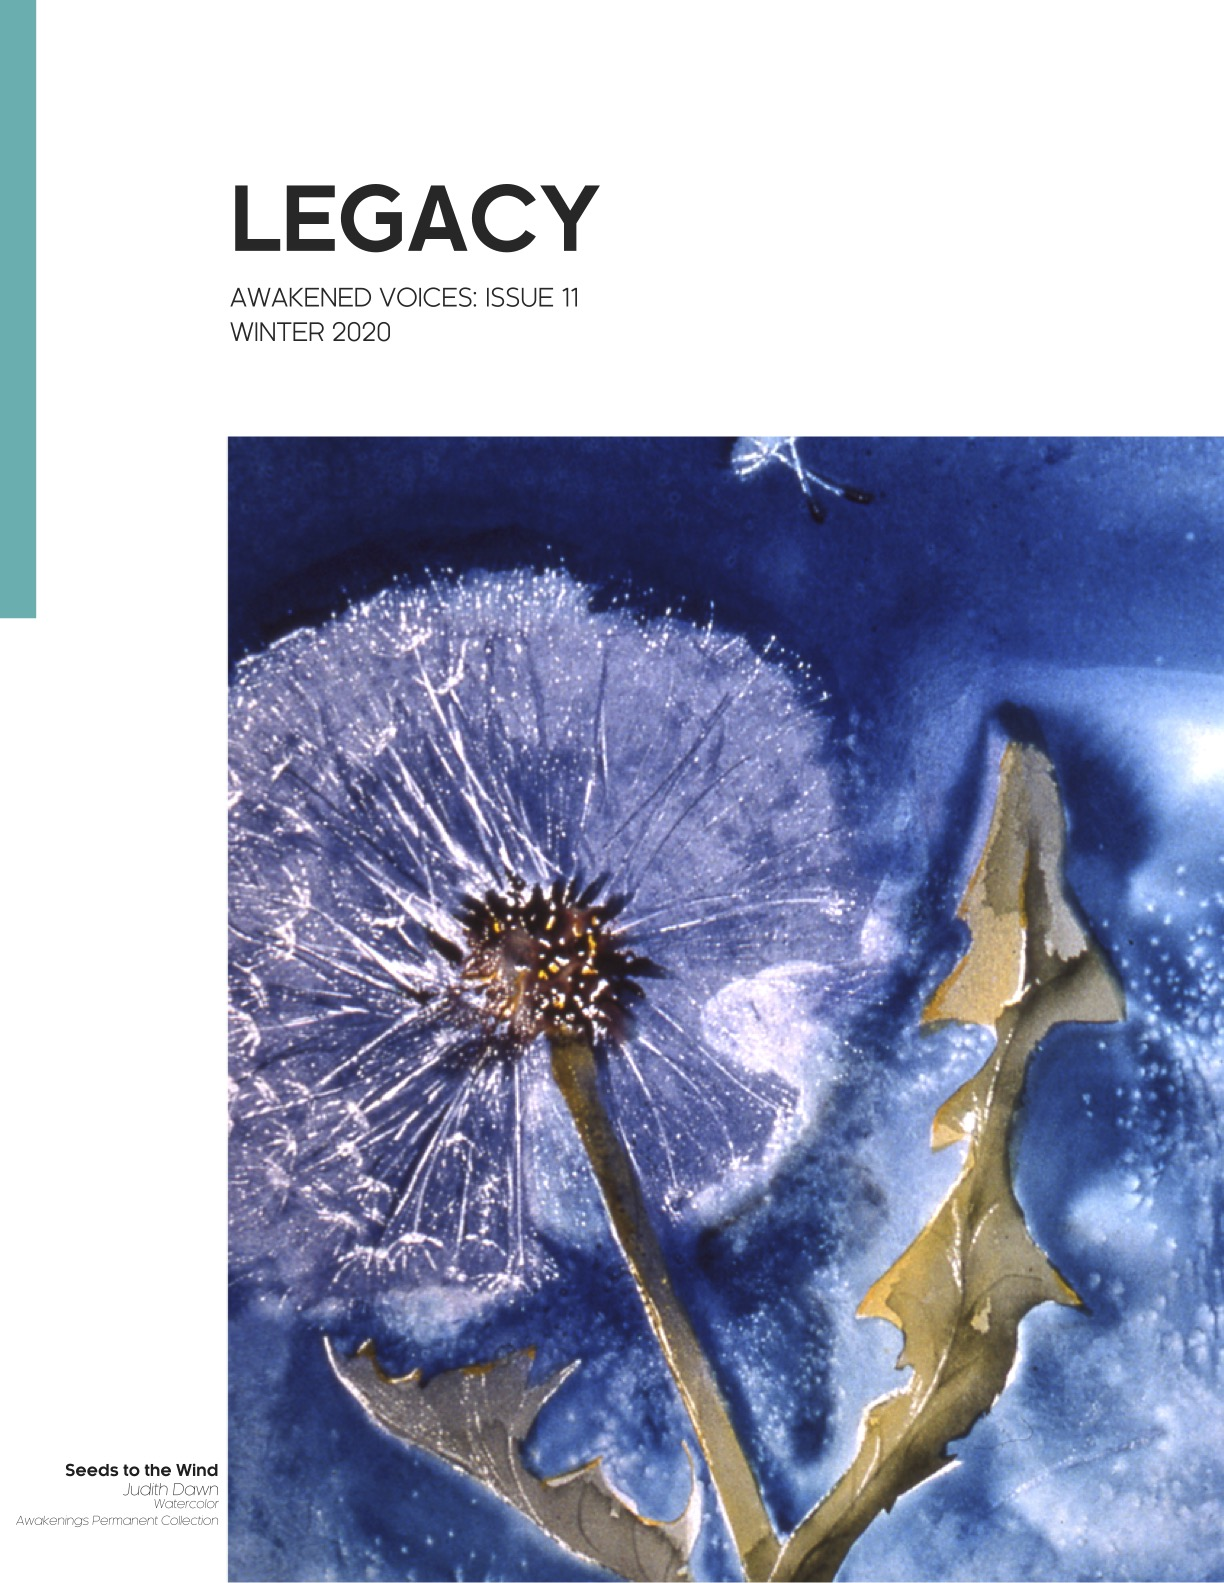 "a dandelion with seeds starting to float away. A blue background. Text reads ""Legacy Awakened Voices Issue 11 Winter 2020"" at the bottom text reads ""Seeds to the Wind by Judith Dawn watercolor Awakenings Permanent Collection"""